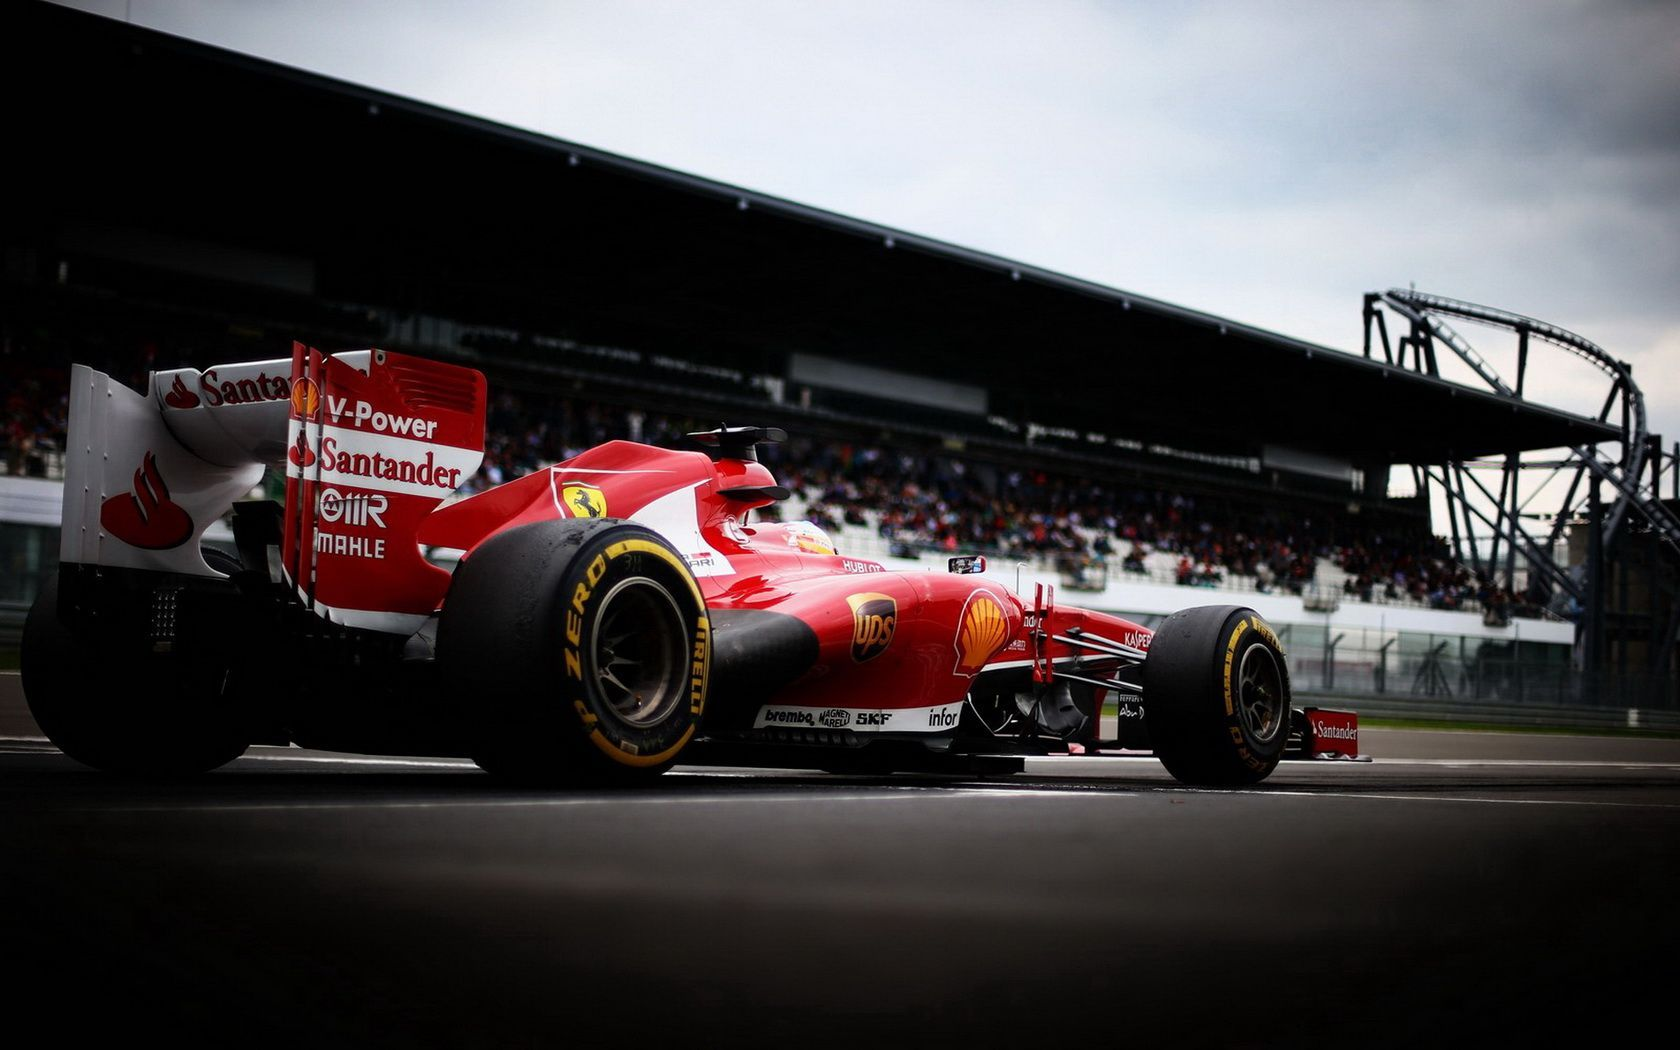 Ferrari F1 Wallpapers Top Free Ferrari F1 Backgrounds